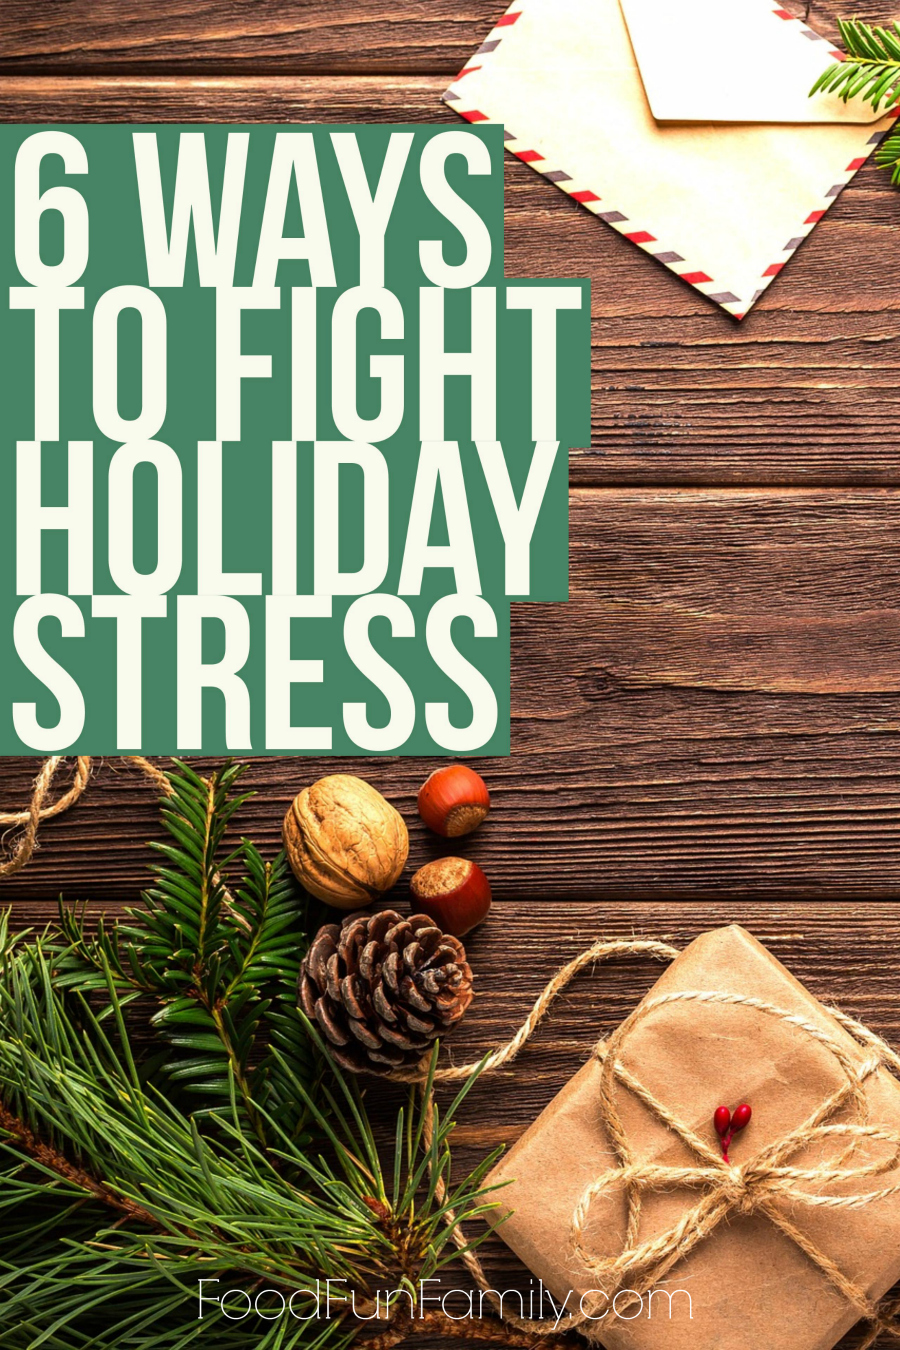 6 ways to fight holiday stress and start to enjoy the holiday season again